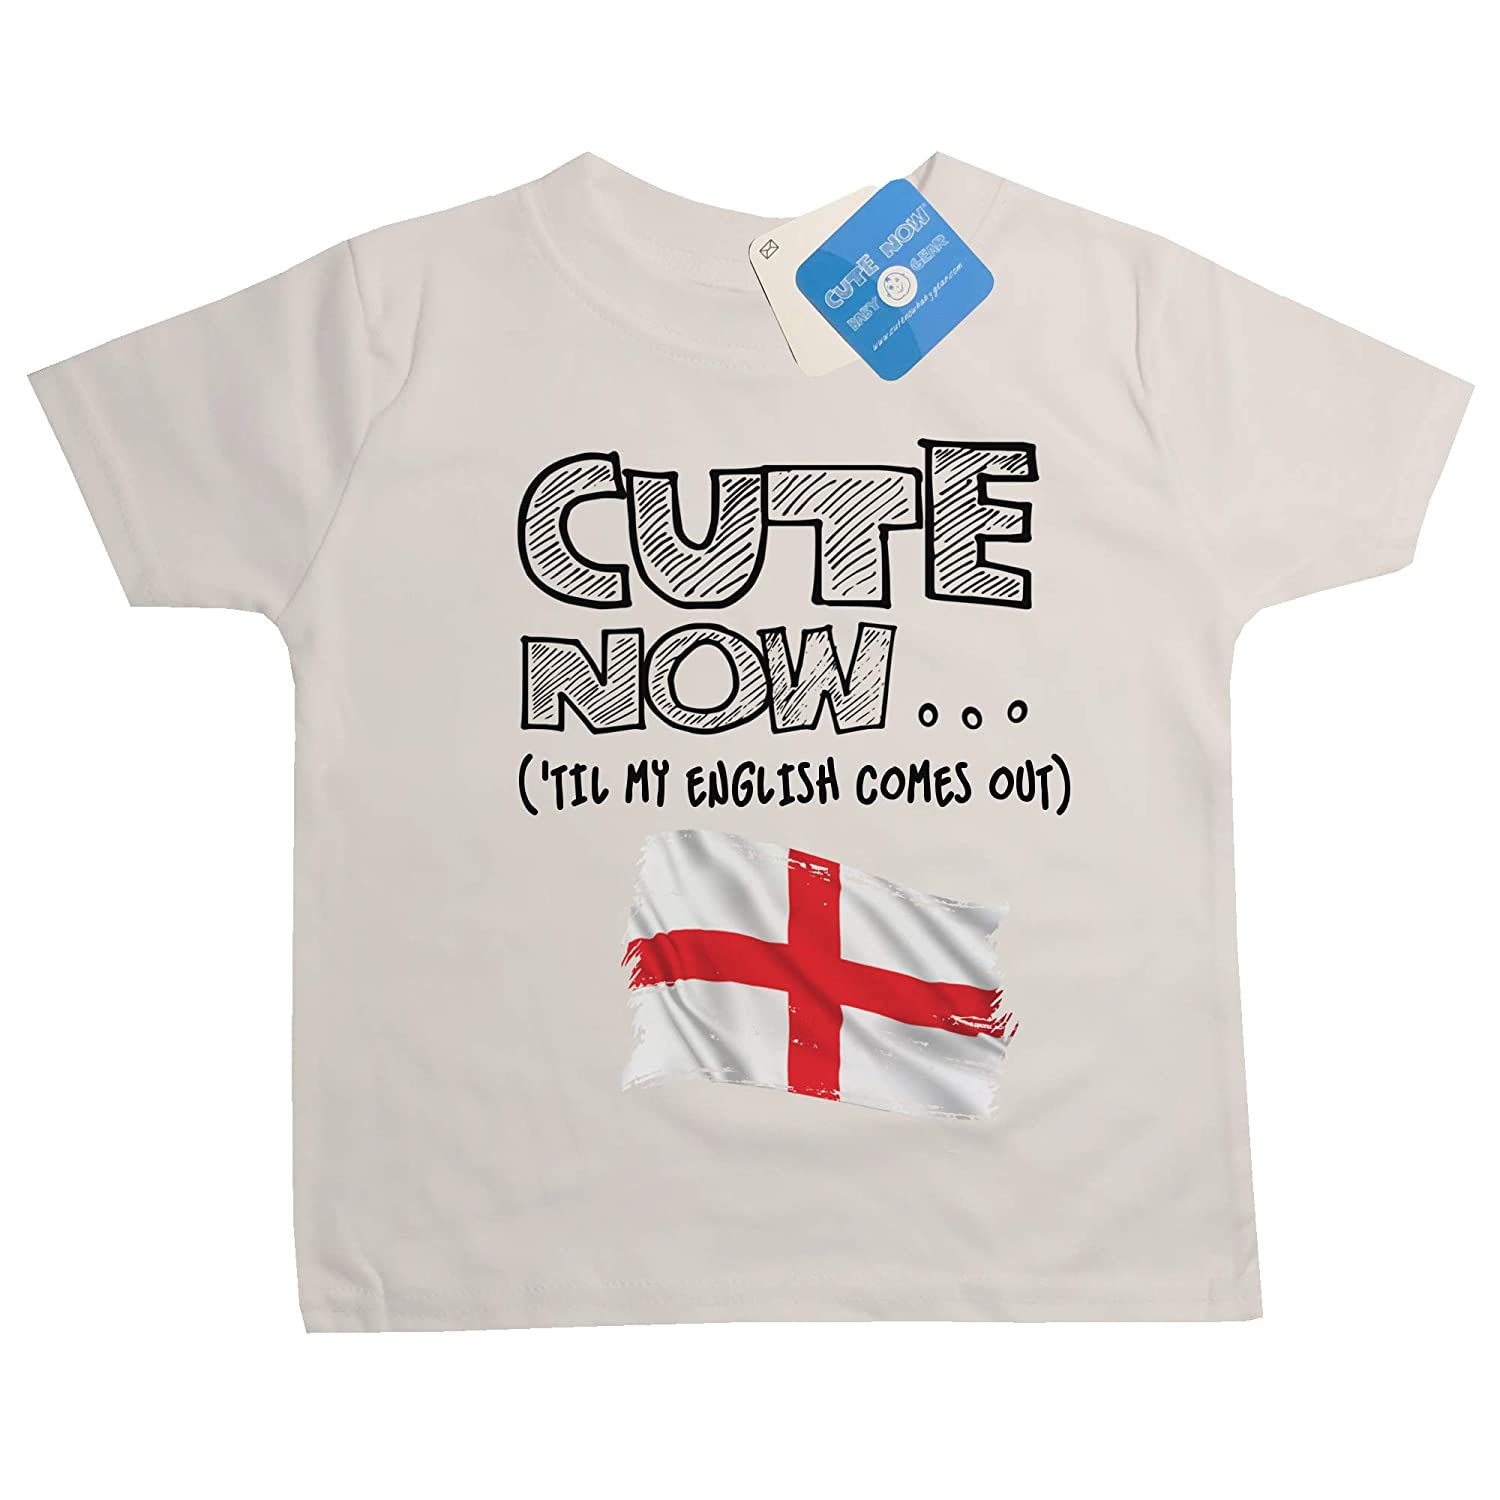 Cute Now Toddler England T-Shirt Til My English Comes Out Kids Shirt Top in White 2T-4T